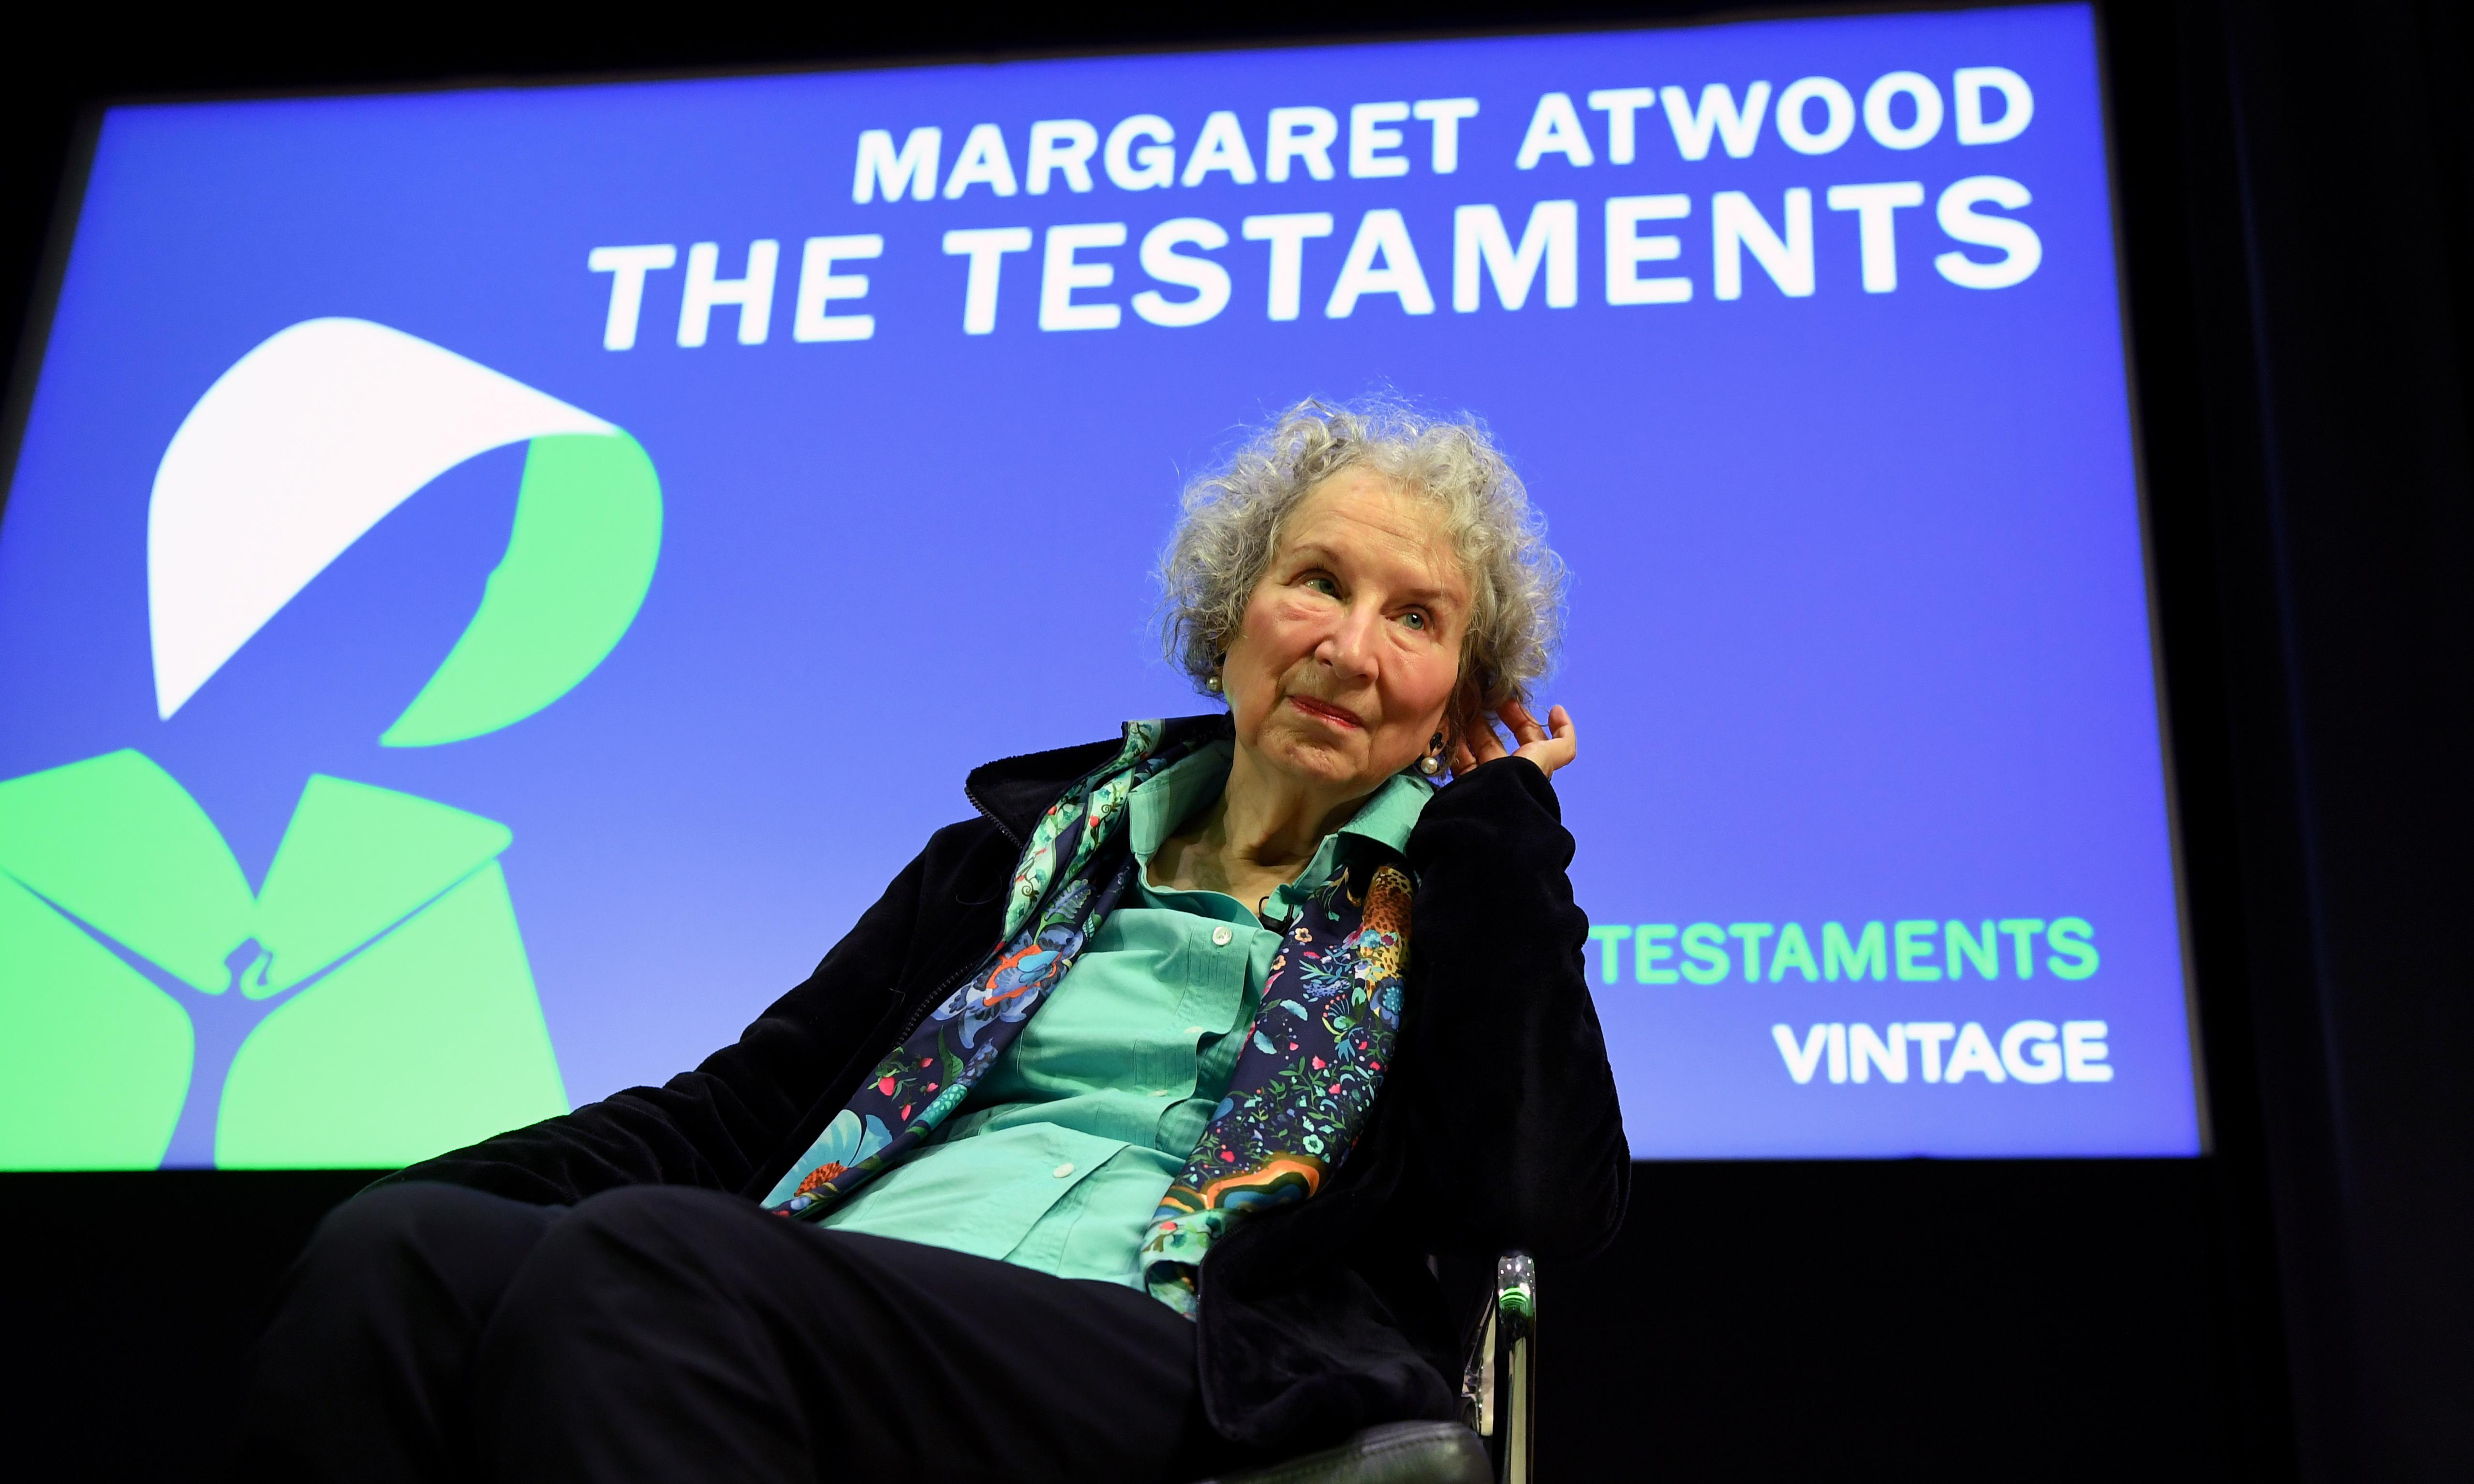 More Handmaid's Tale sequels? 'Never say never', says Margaret Atwood